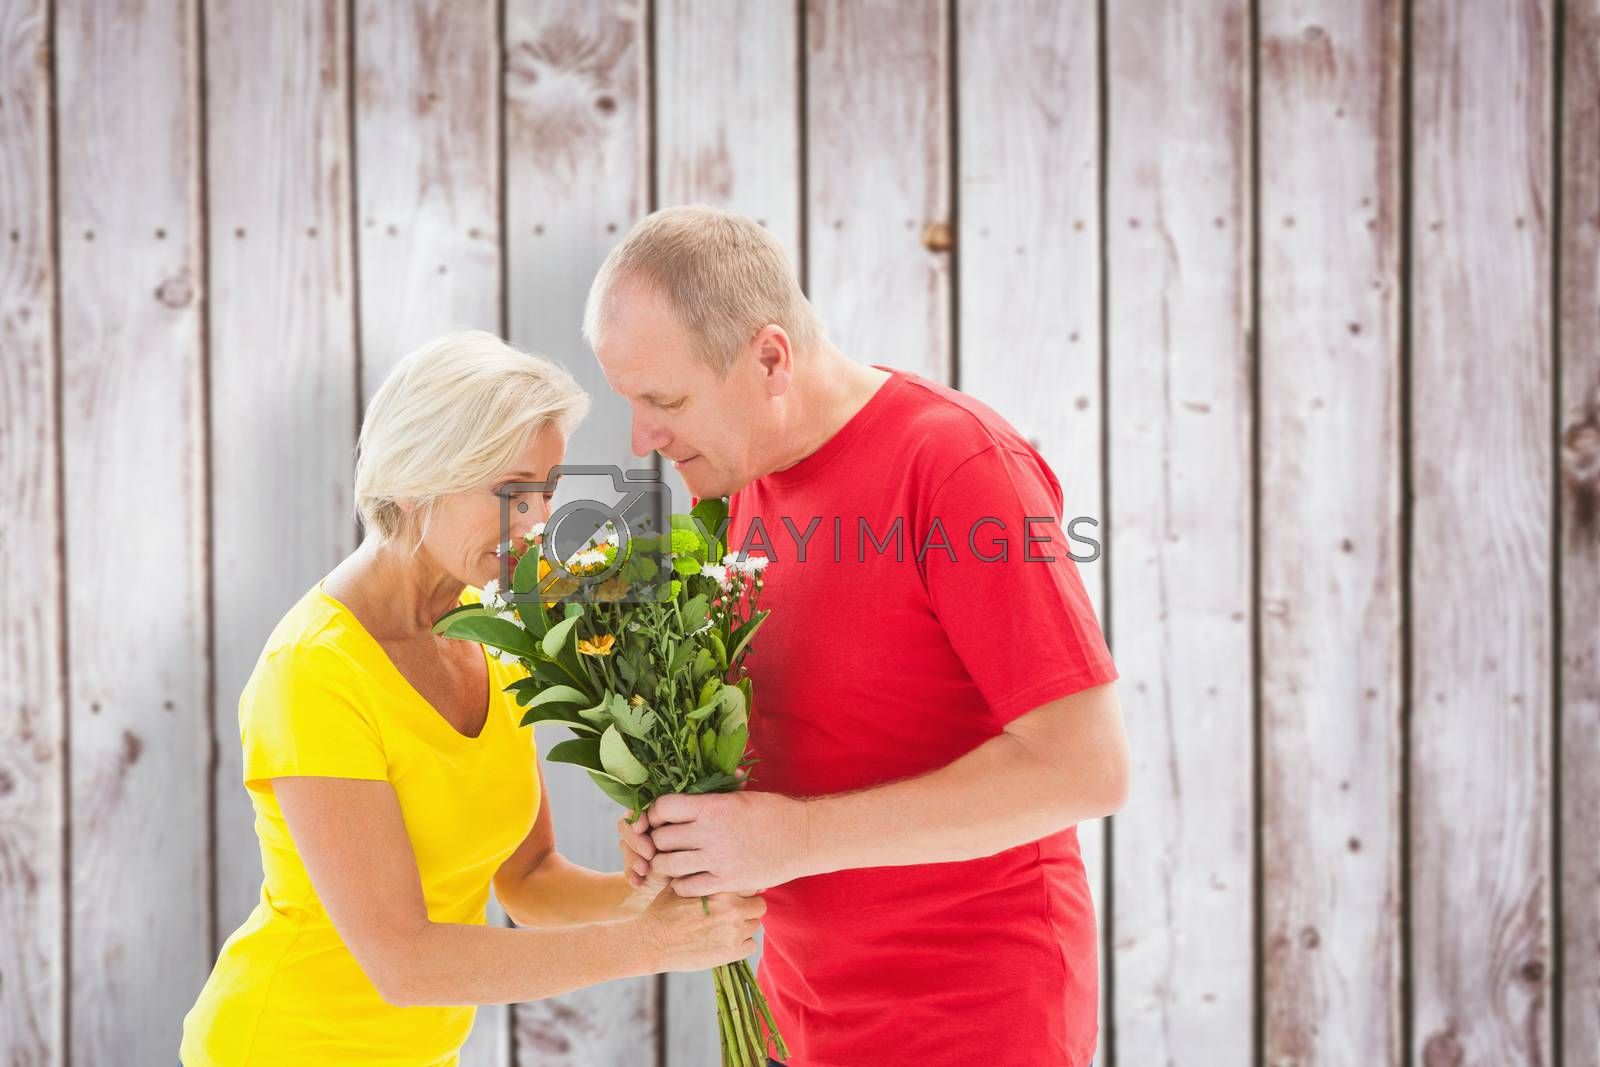 Mature man offering his partner flowers against wooden planks